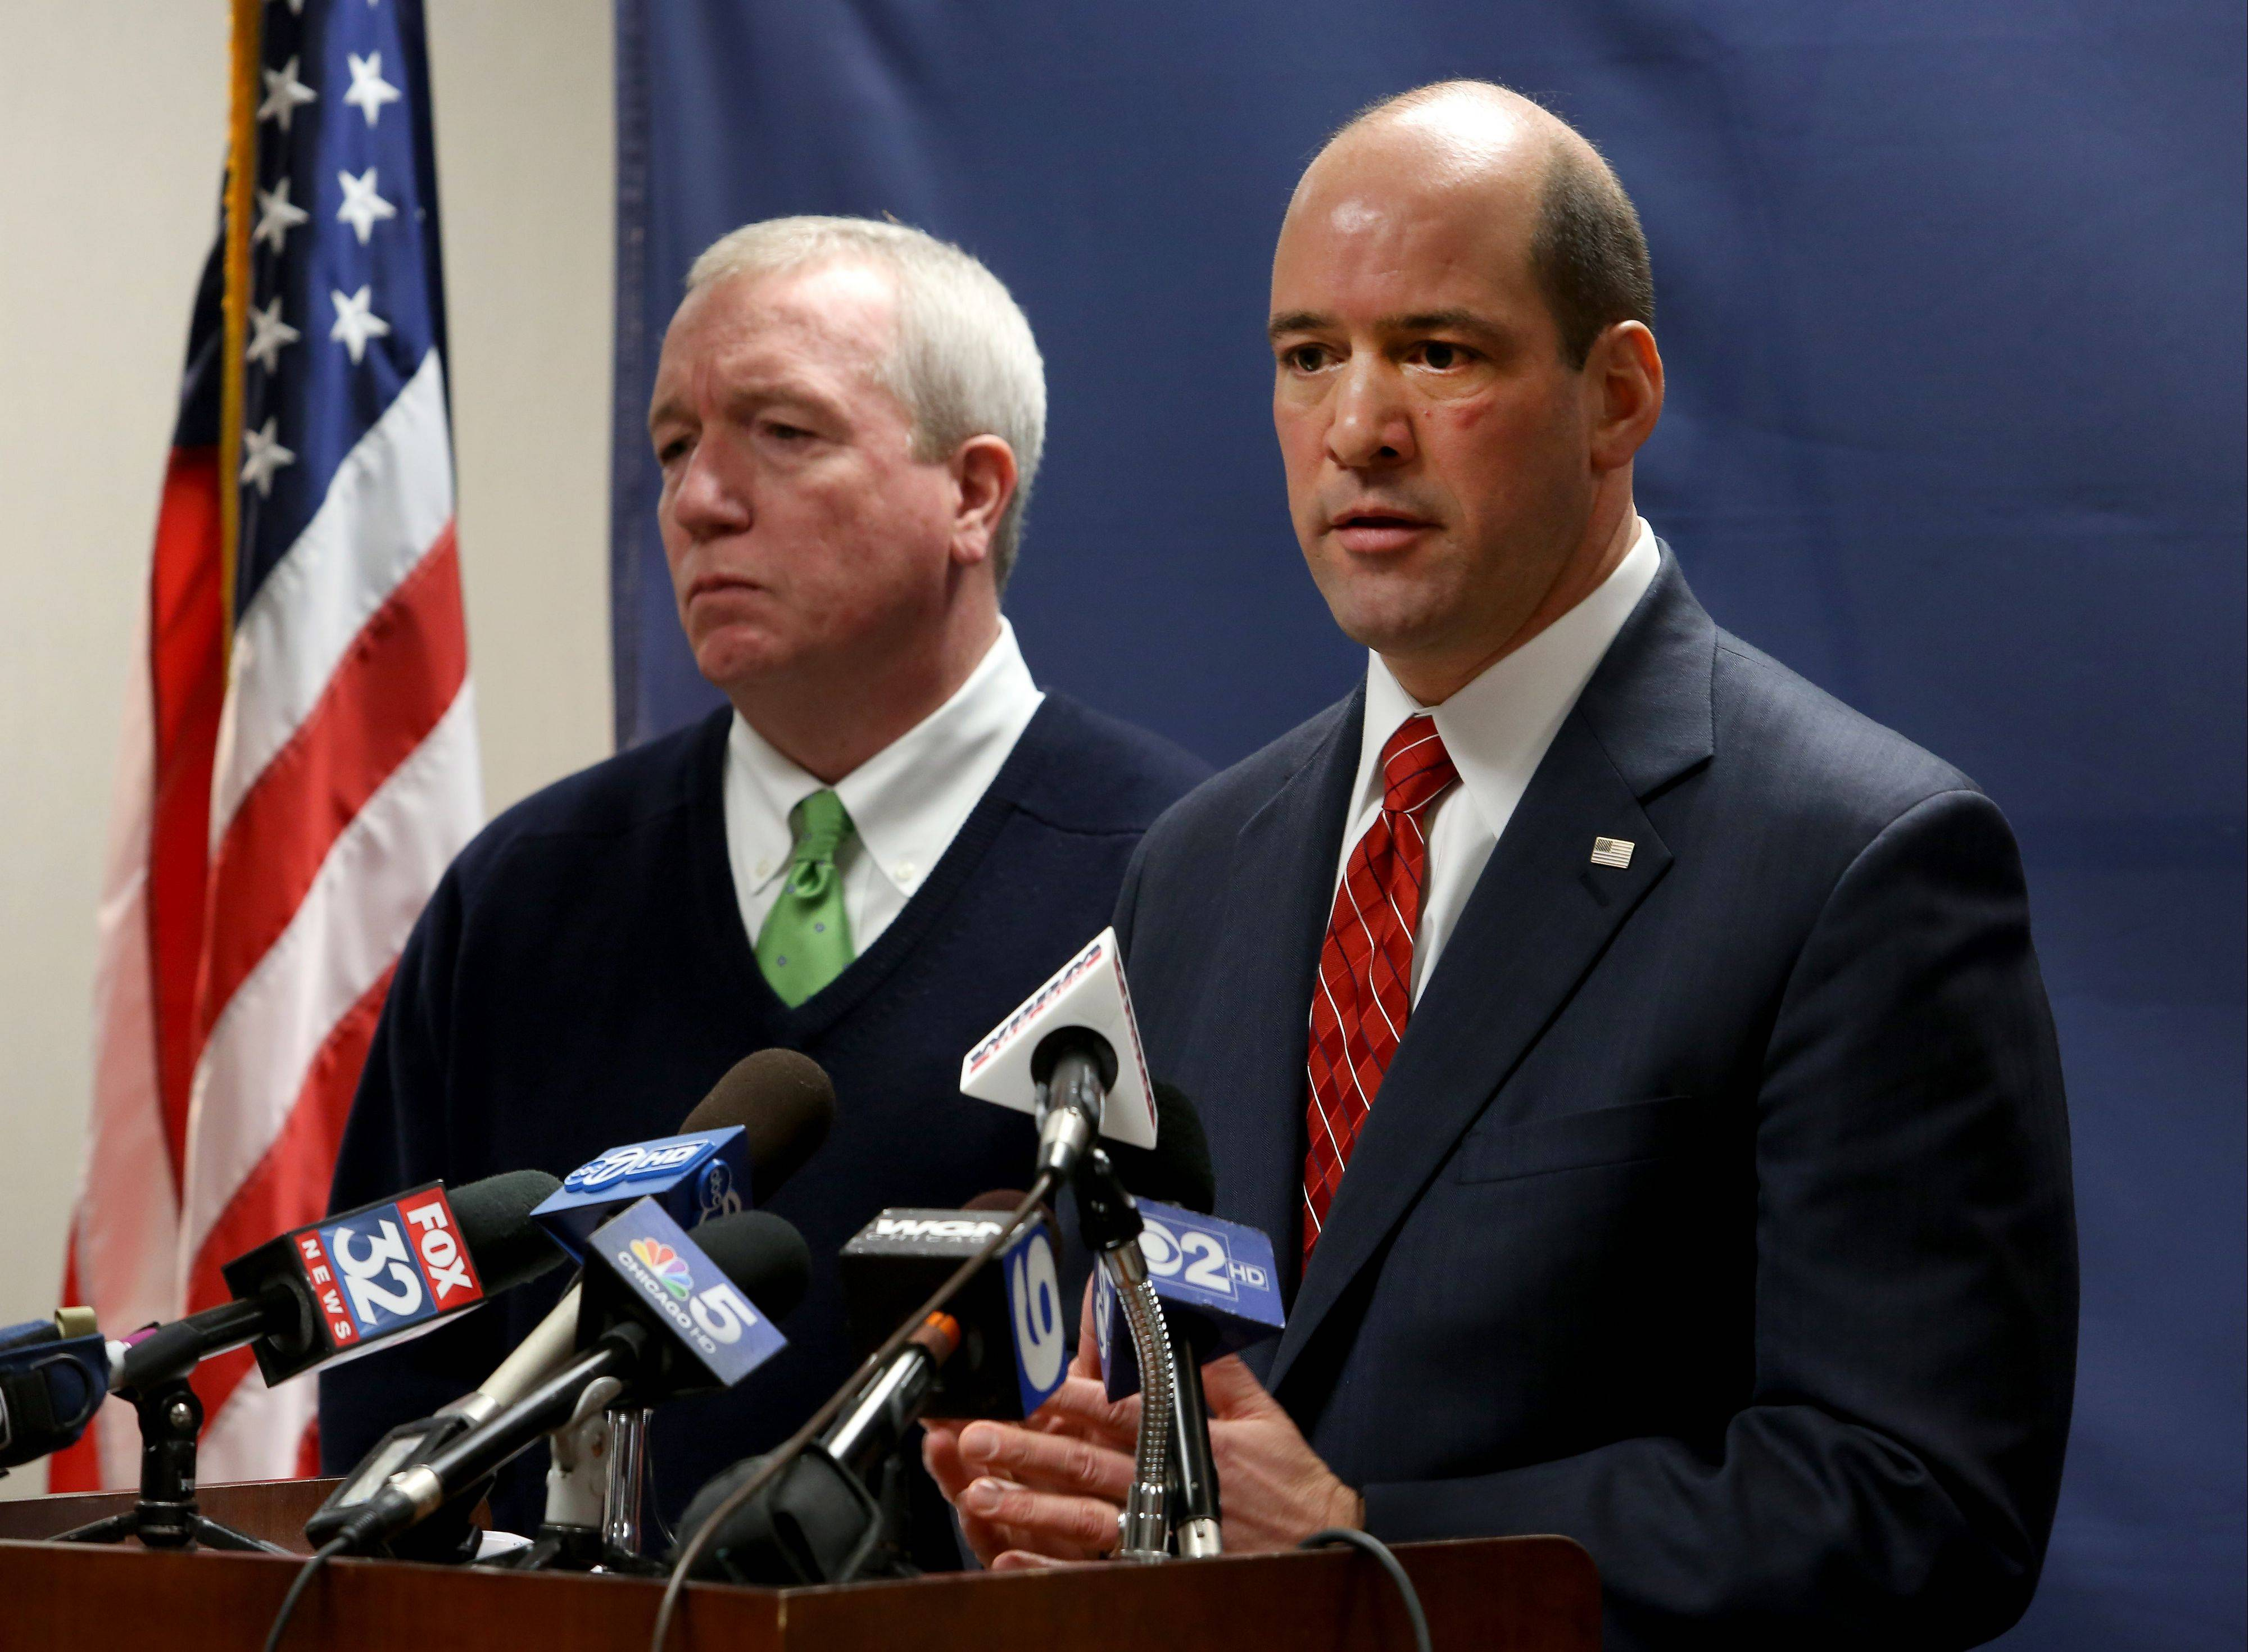 DuPage County State's Attorney Bob Berlin, along with U.S. Drug Enforcement Administration Special Agent Jack Riley, left, announce criminal charges against three Schaumburg police officers accused of dealing drugs.